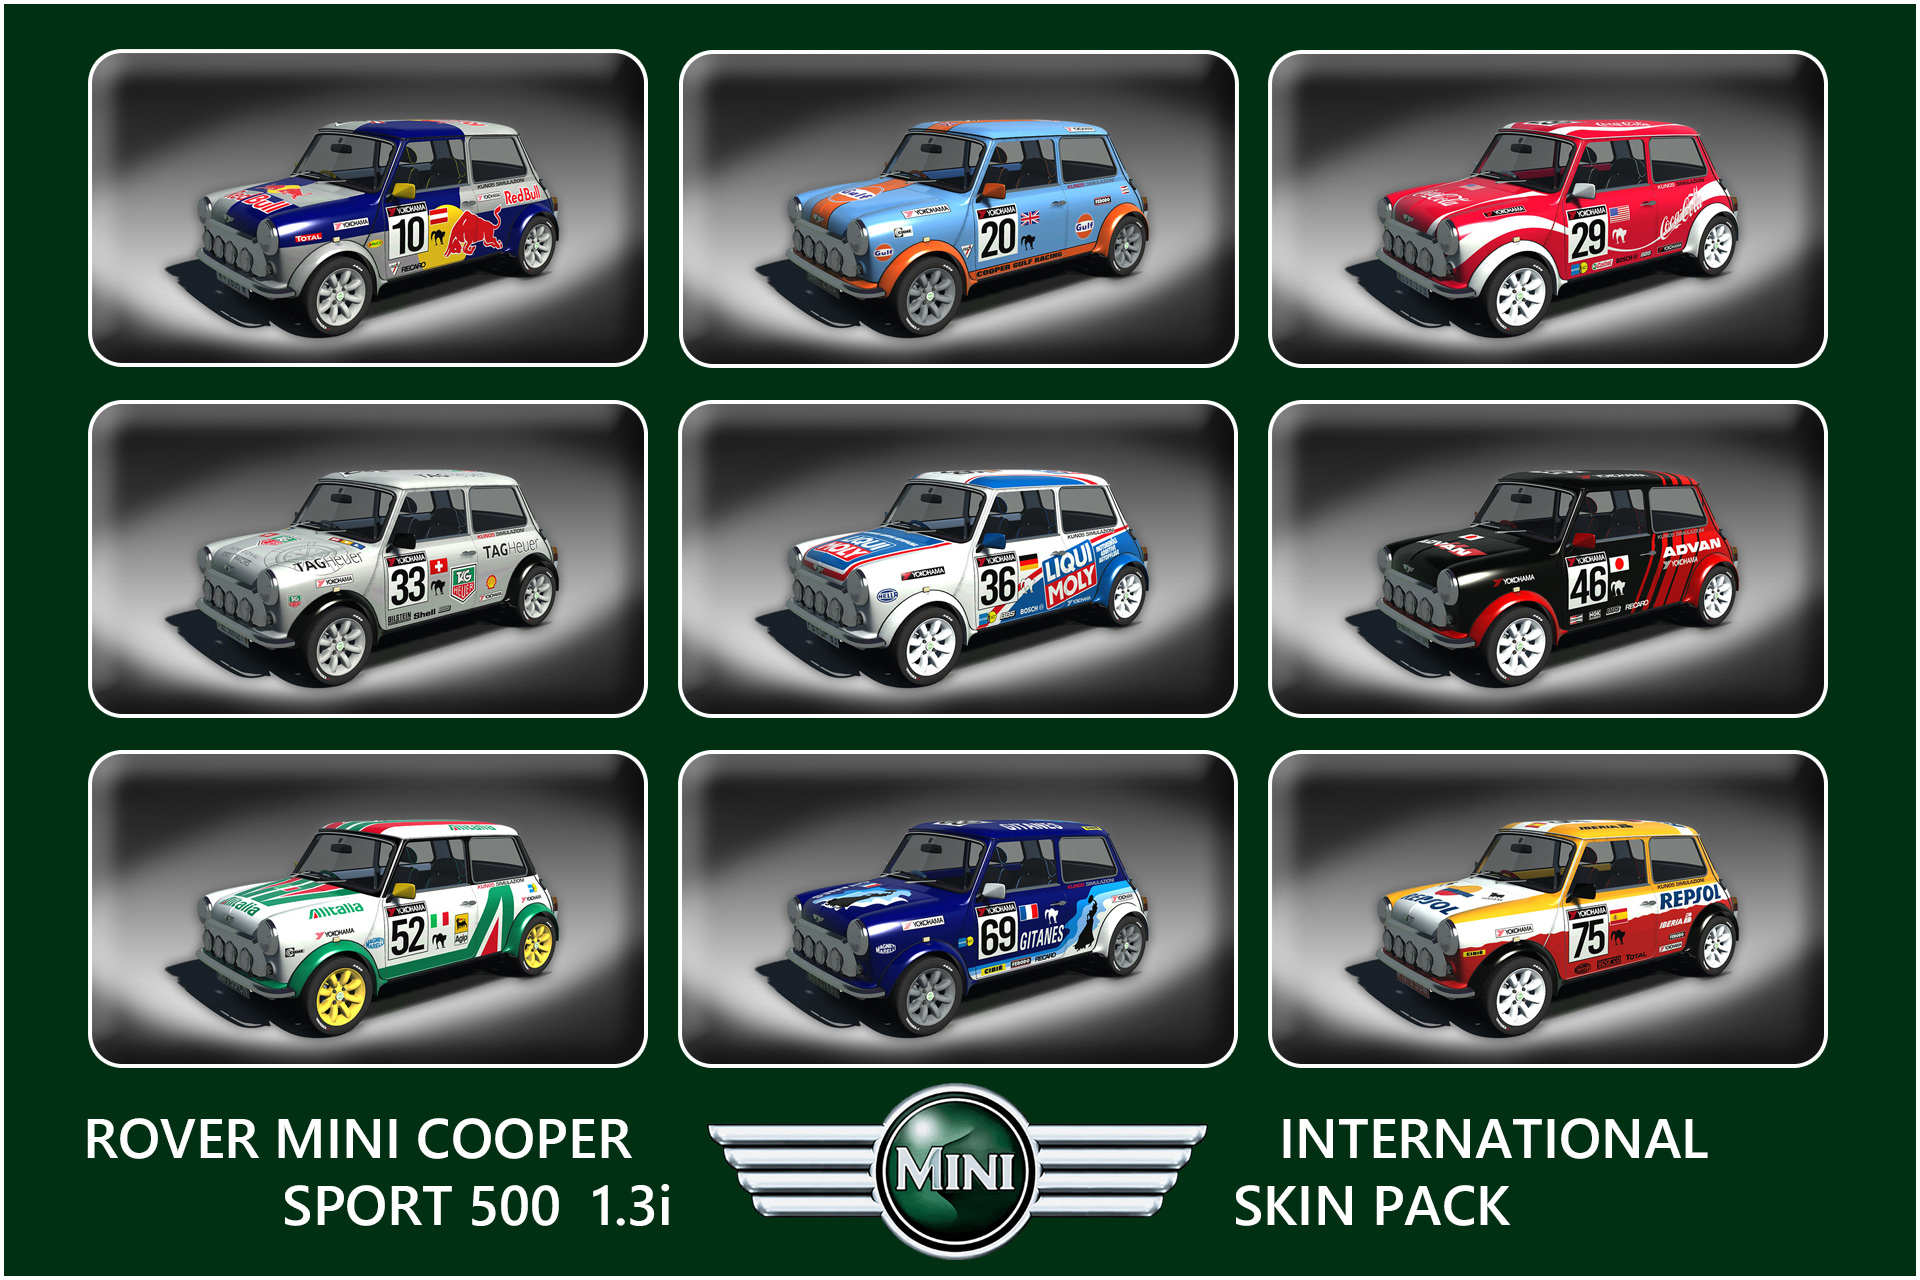 Mini_Cooper_International_Skinpack.jpg